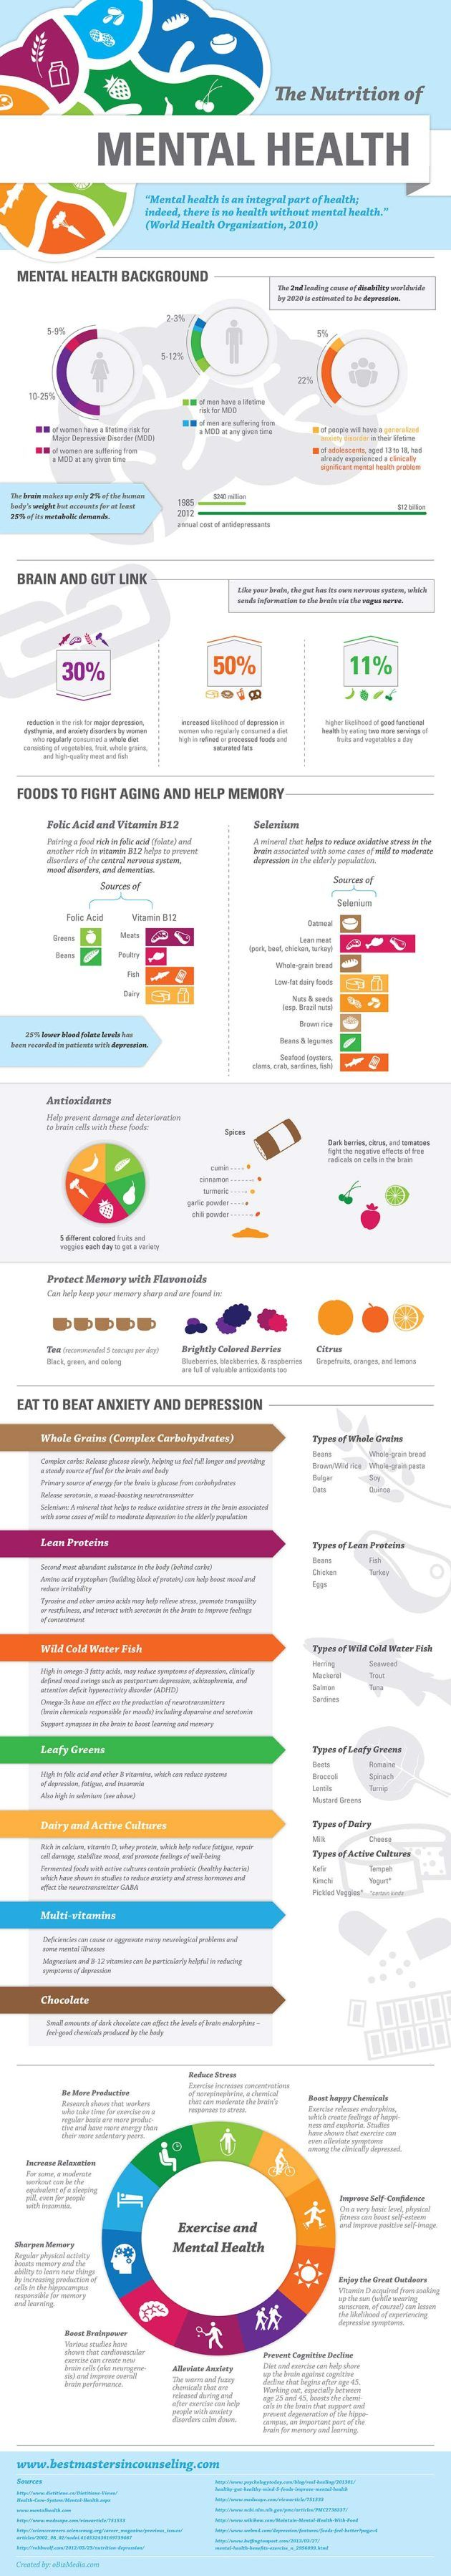 Here's an infographic on what you can eat and do to improve your mental health! #mentalhealth #help #infographic